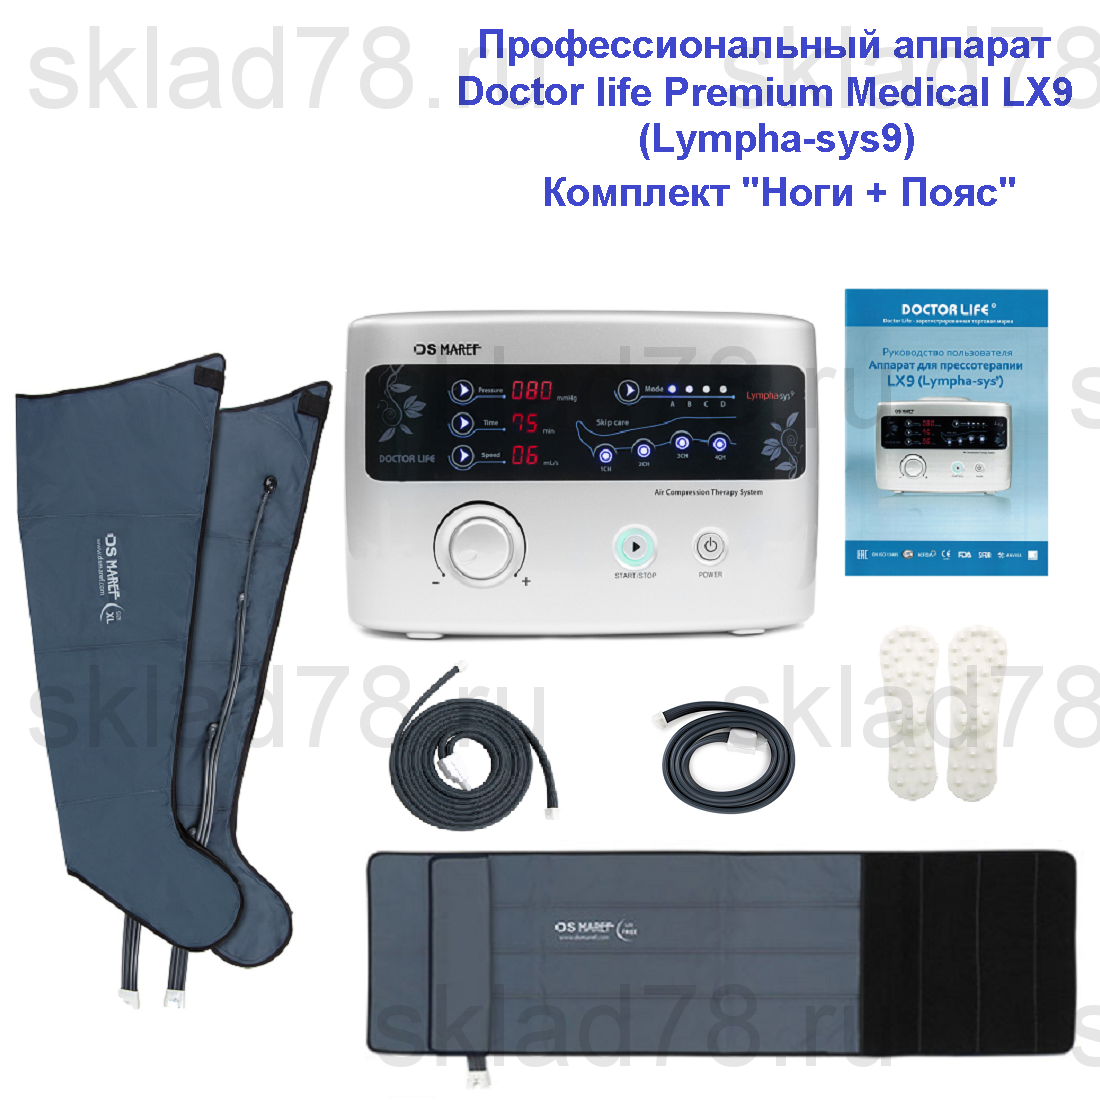 "Doctor Life Premium Medical LX9 (Lympha-sys9) комплект ""Ноги + Пояс"""